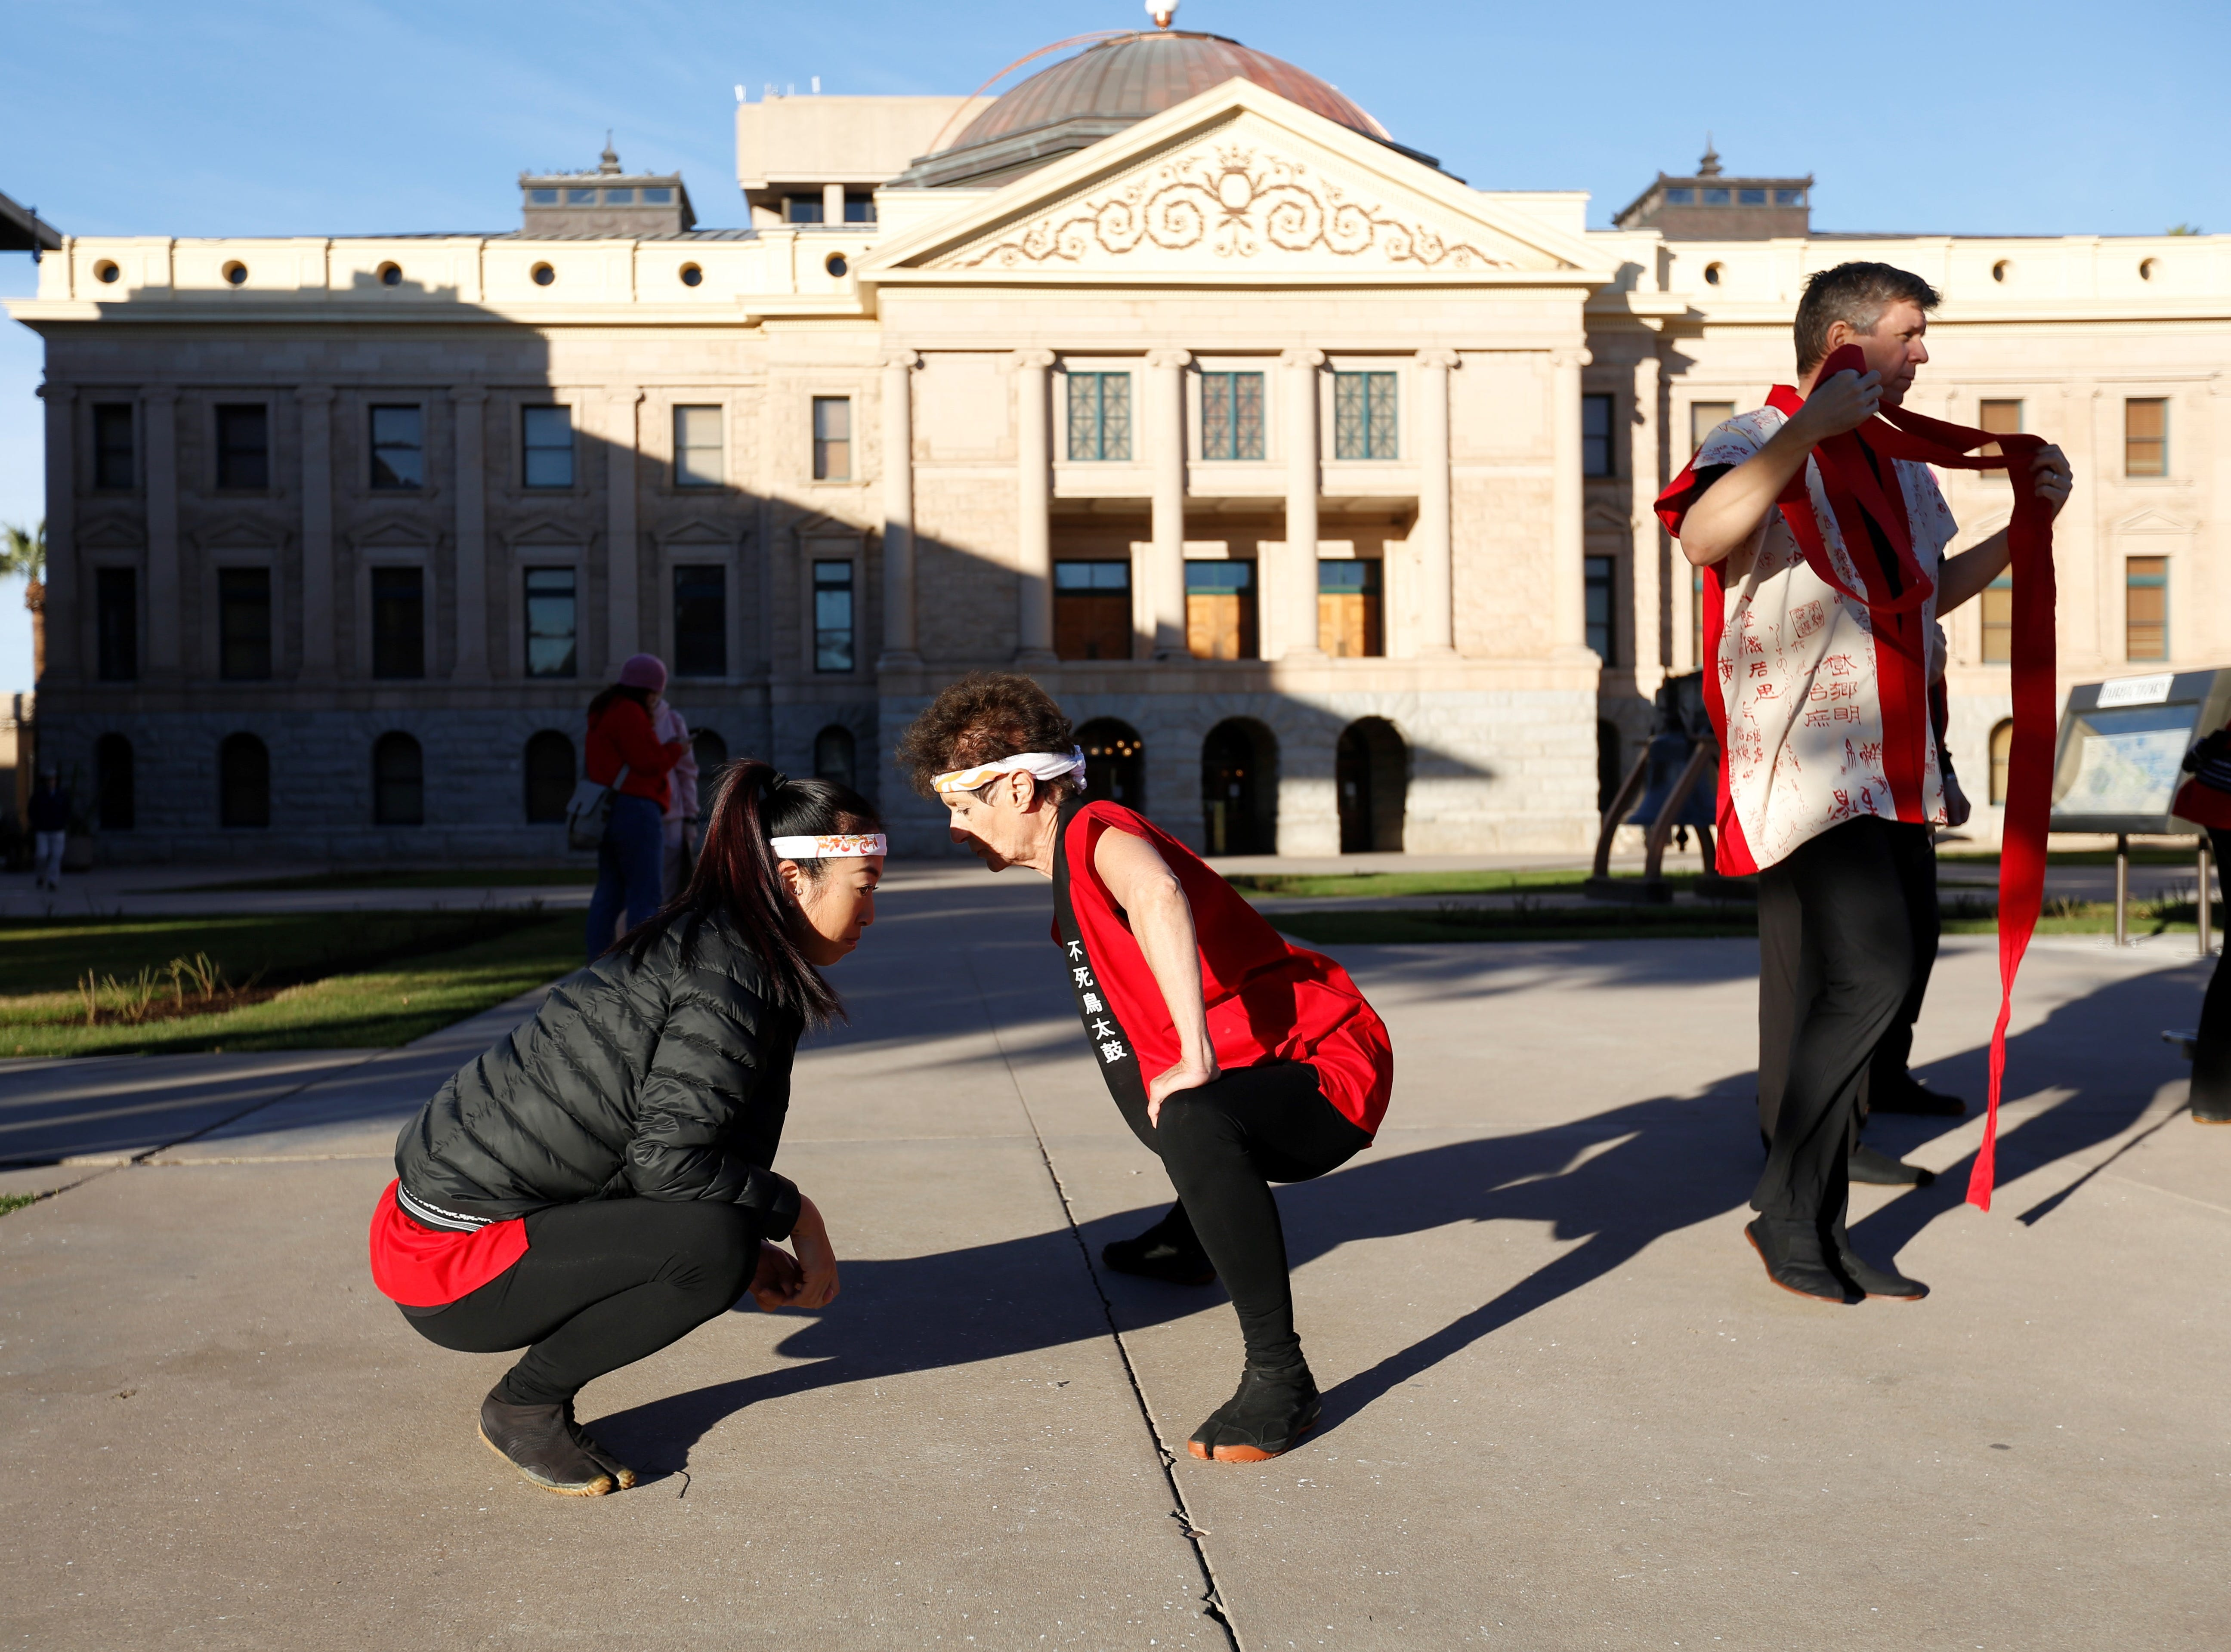 Lauren Ellis (left) and Marsha Robb, from the Fushicho Daiko Dojo, stretch before performing Japanese Taiko drumming at the Arizona Capitol, Jan. 19, 2019.